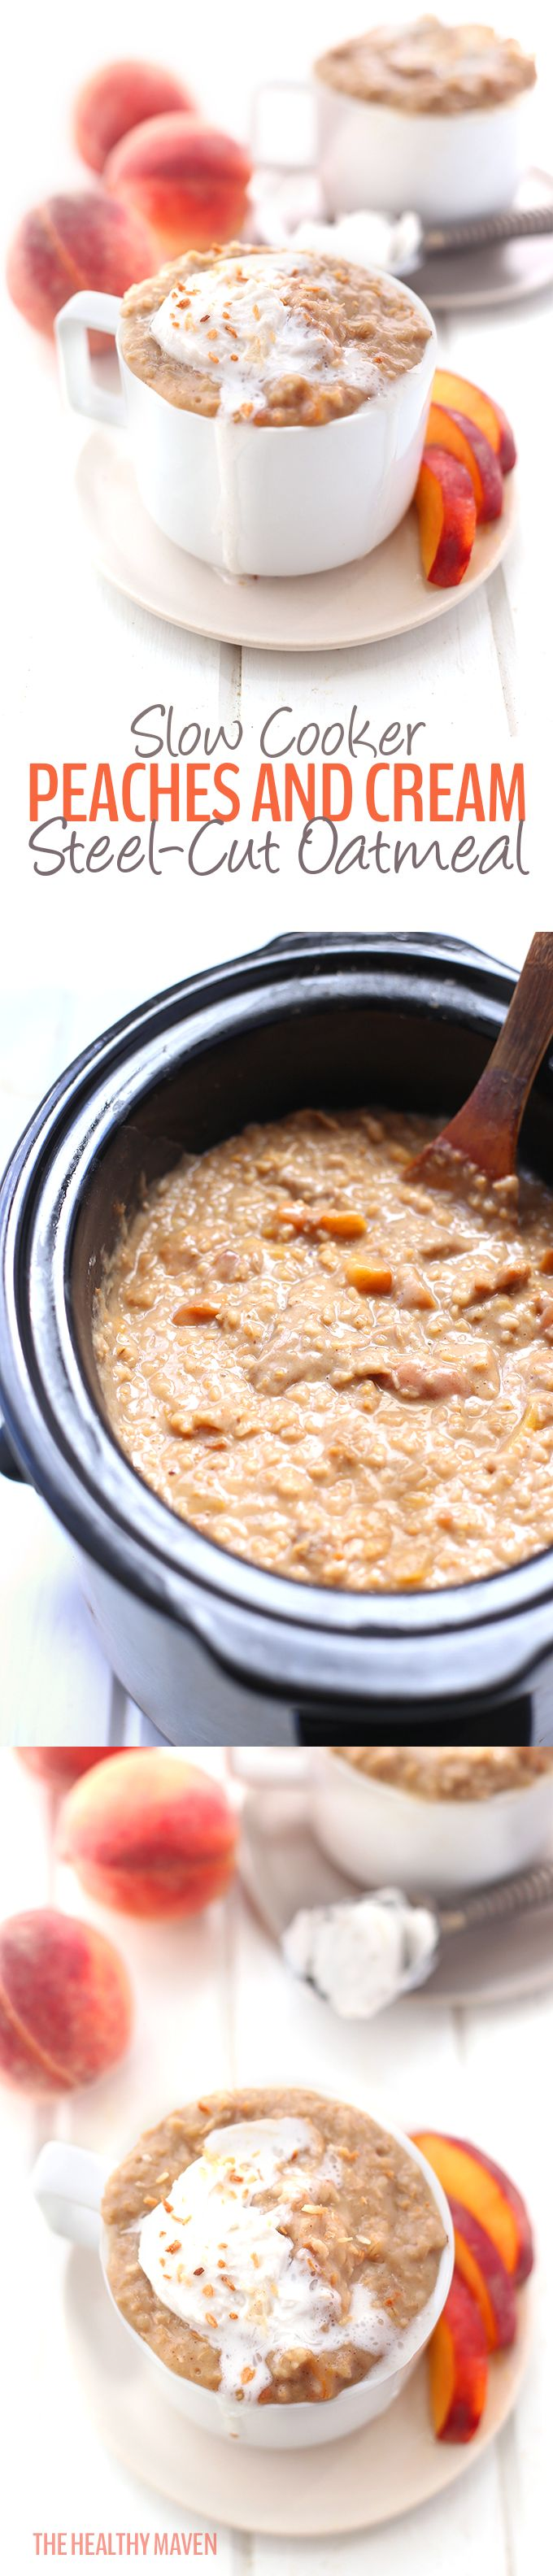 Made with steel-cut oats, fresh peaches and coconut cream this gluten-free and dairy-free, hands-off recipe for slow cooker peaches and cream steel-cut oatmeal is guaranteed to become a breakfast favorite!